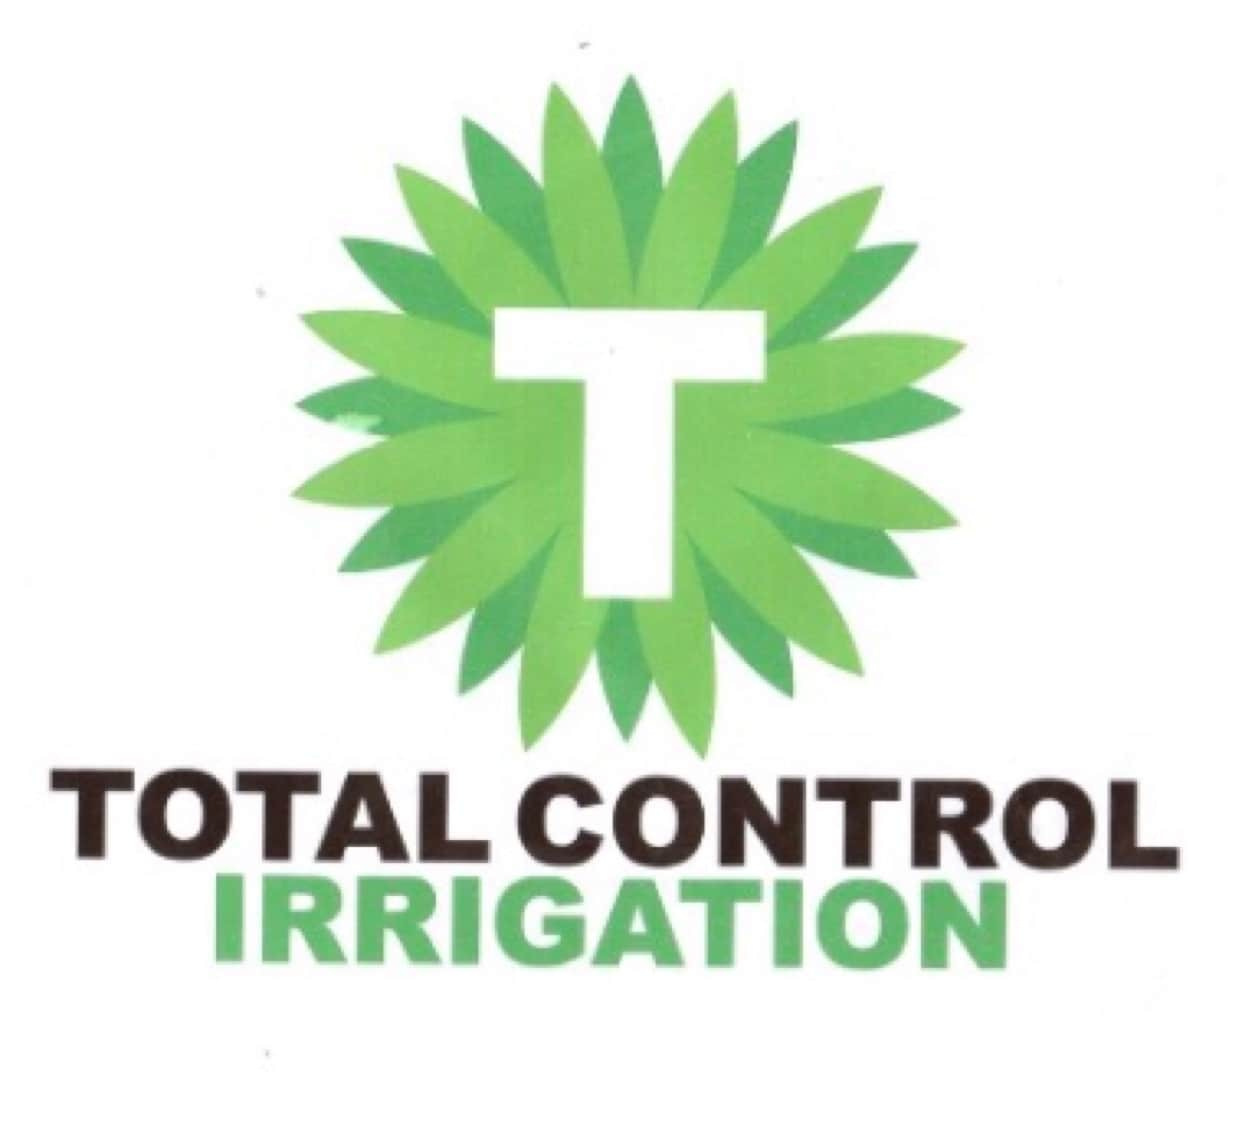 TOTAL CONTROL IRRIGATION INC.